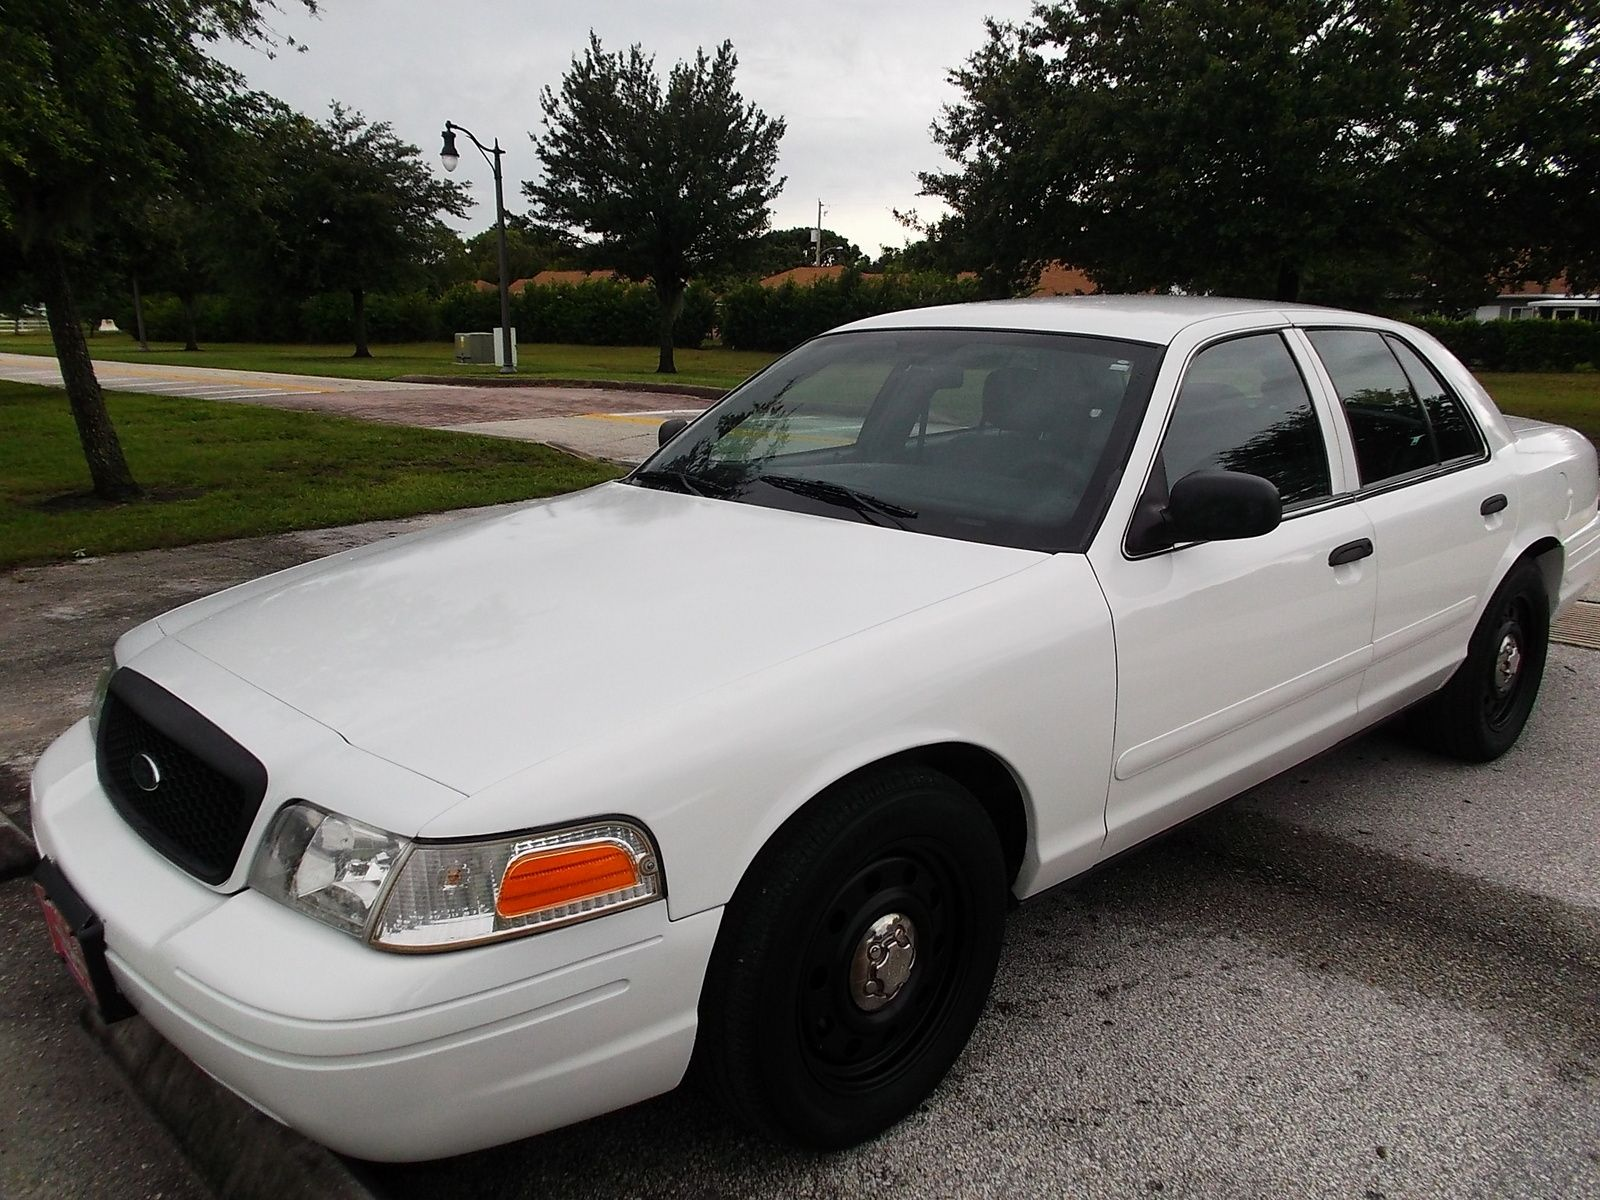 Picture of 2006 Ford Crown Victoria Police Interceptor, exterior ...